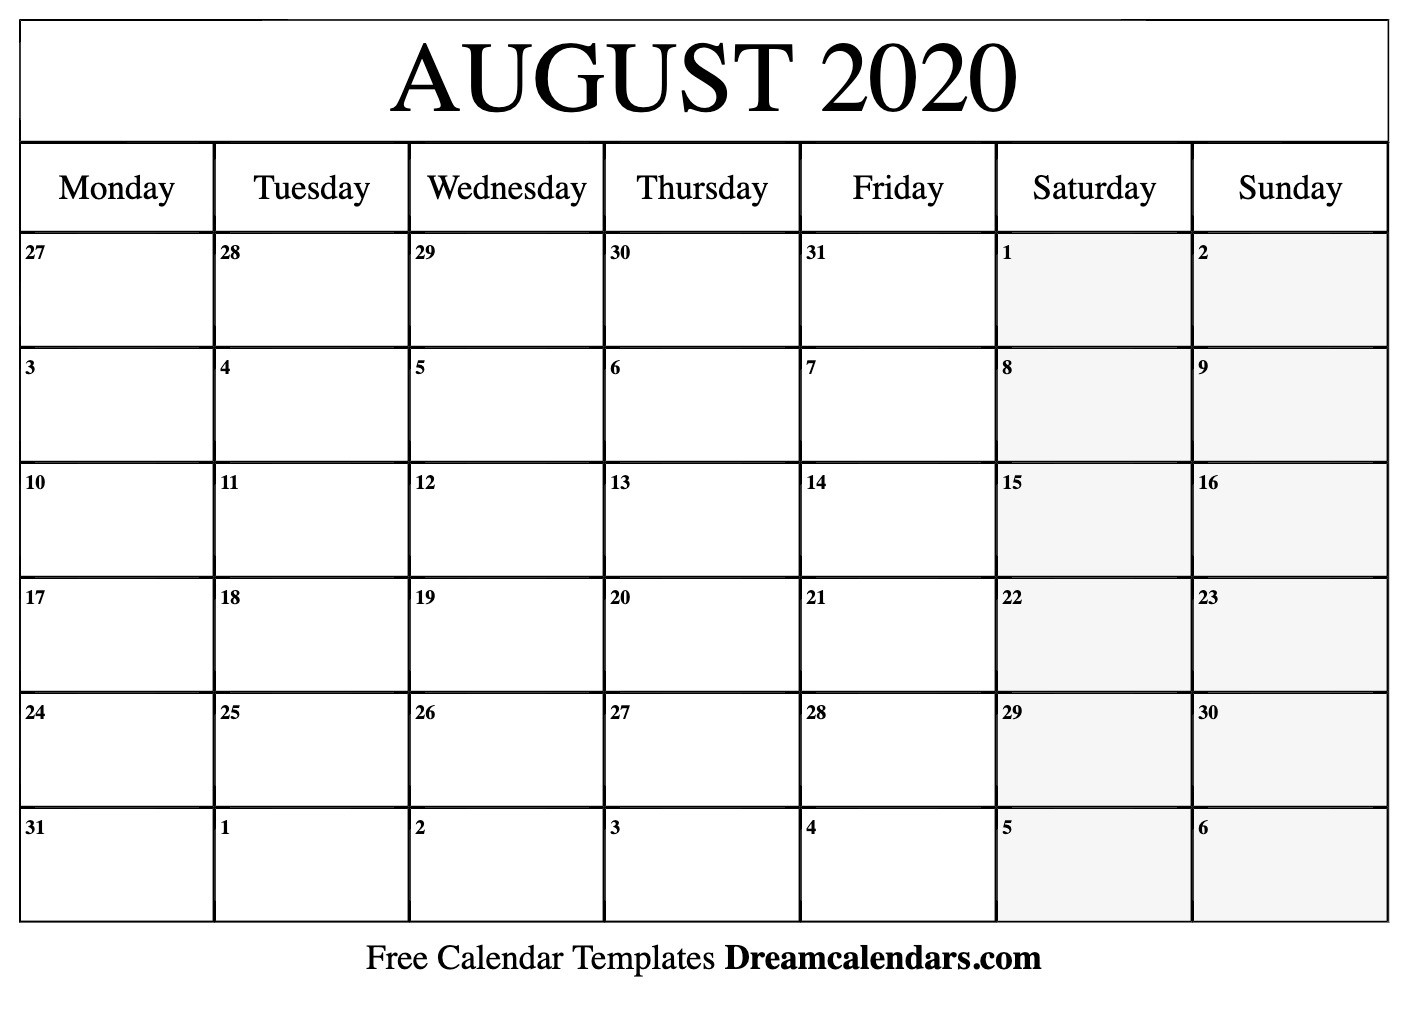 Printable August 2020 Calendar  National Day Calendar August 2020